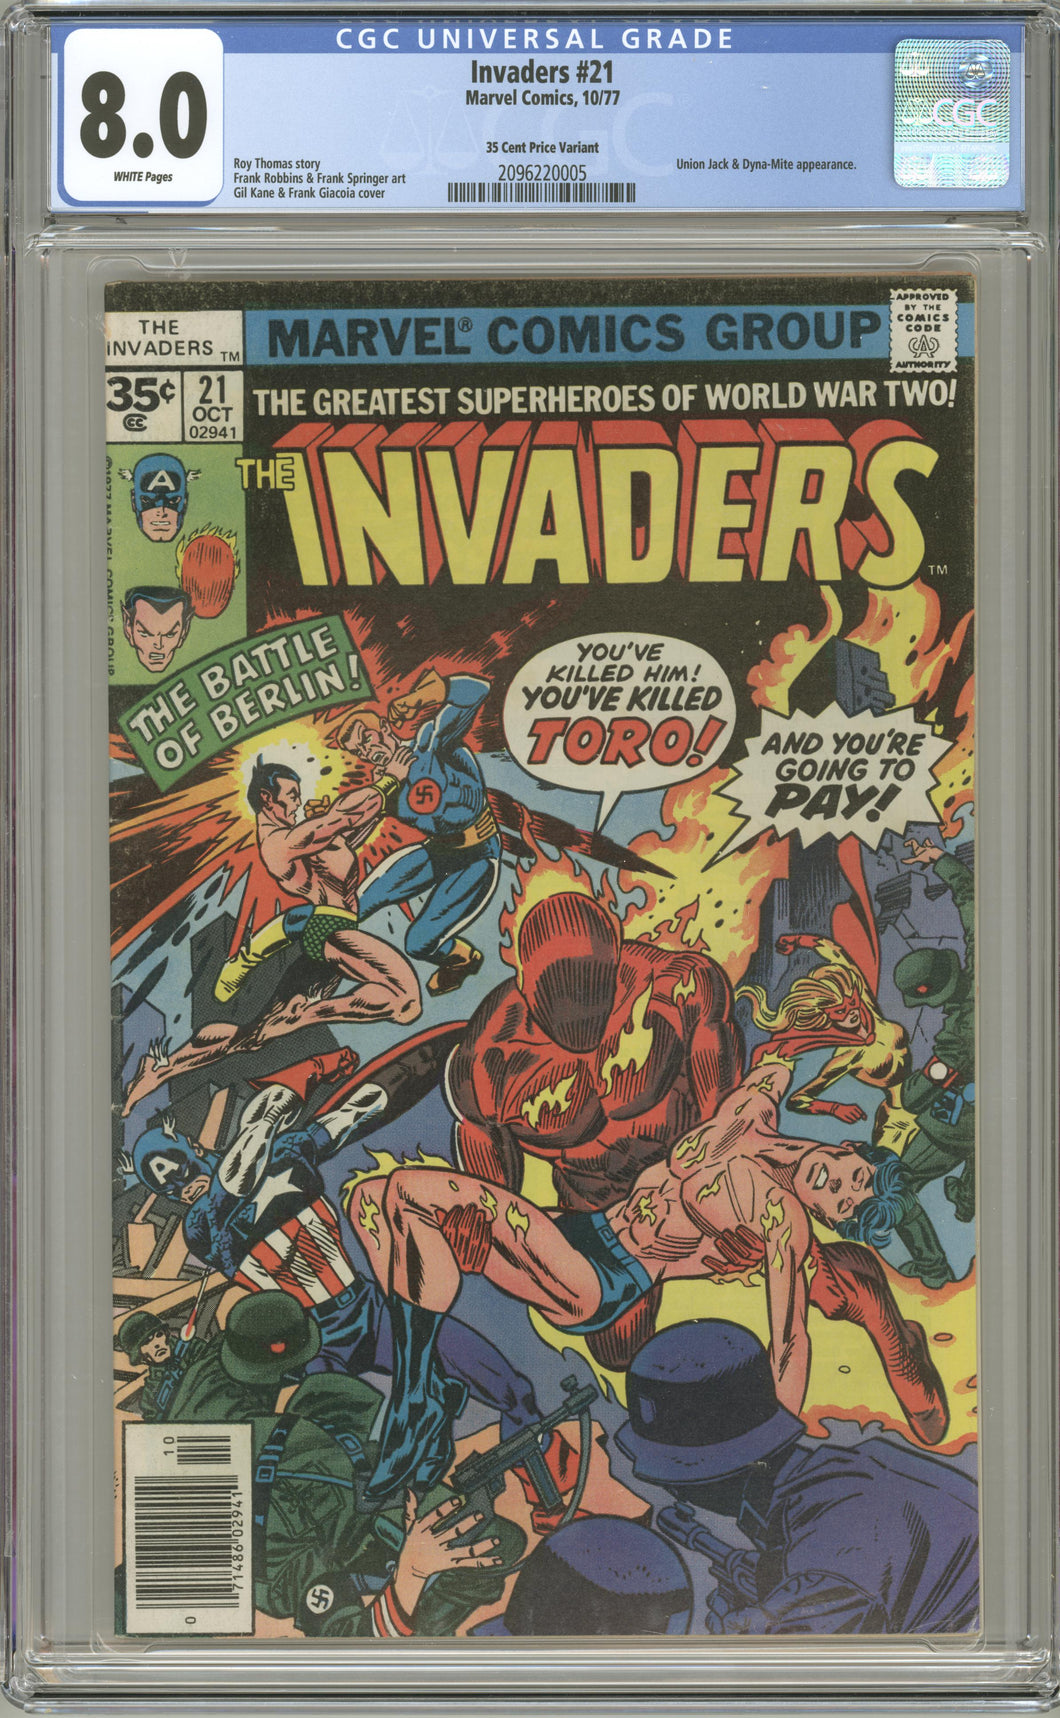 INVADERS #21 CGC 8.0 VF RARE 35 CENT COVER PRICE VARIANT 1977 MARVEL